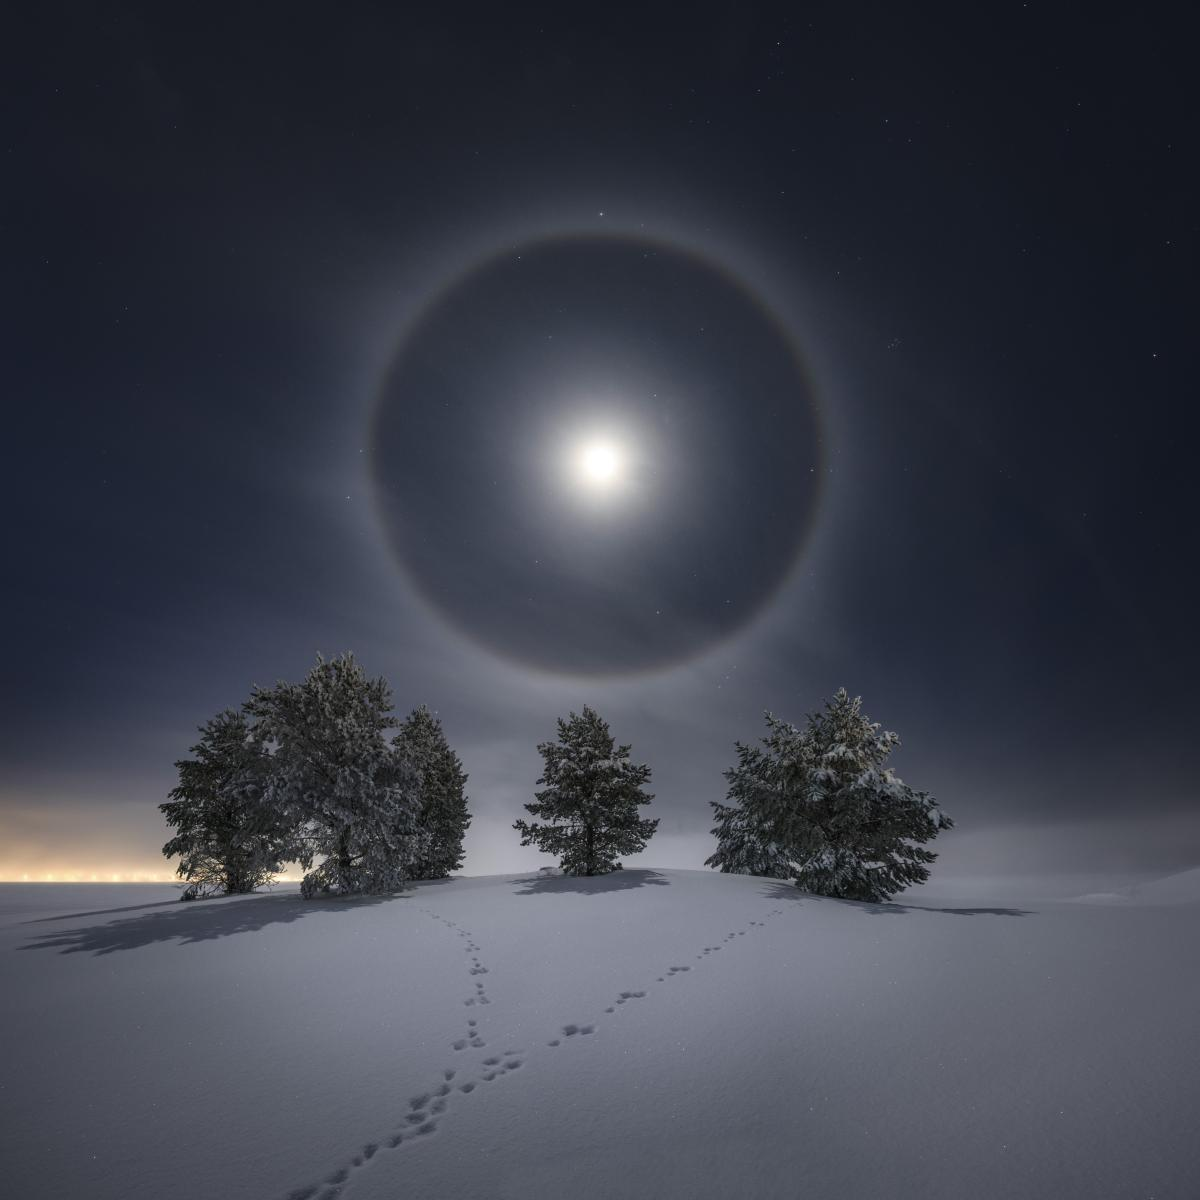 A bright full moon shines over fir trees in the snow